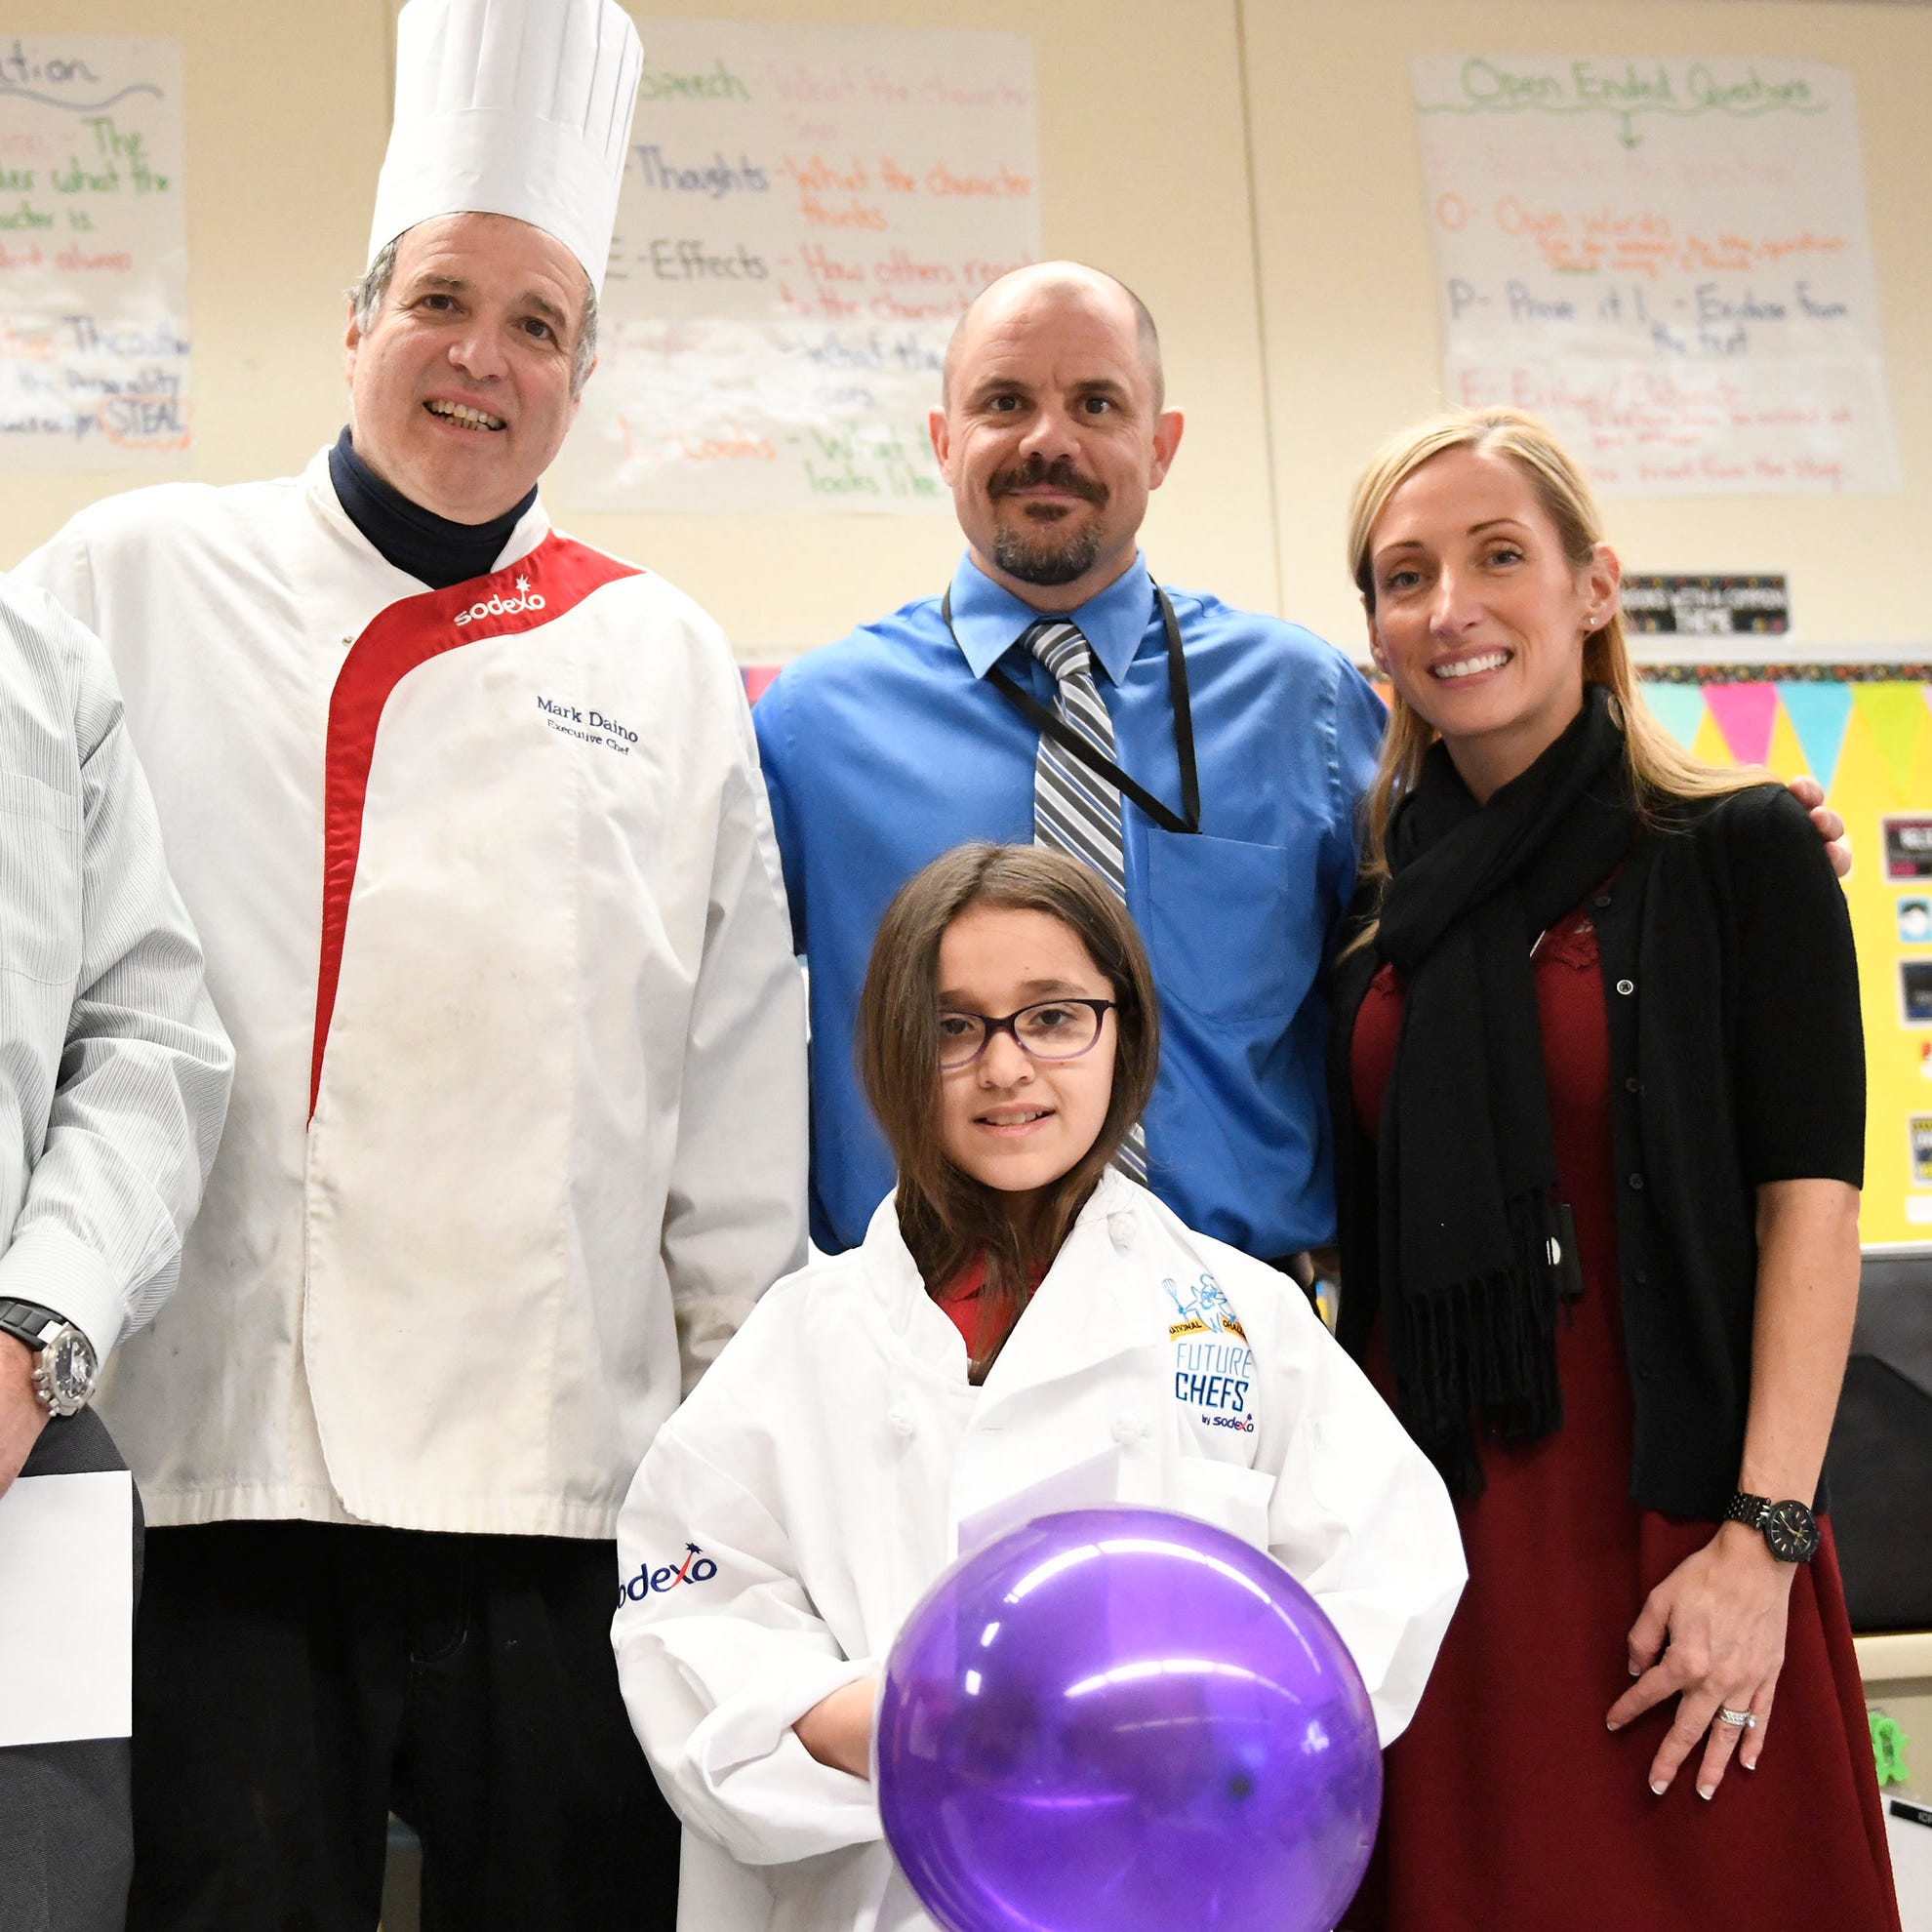 Sodexo surprises Vineland student with invitation to cooking competition